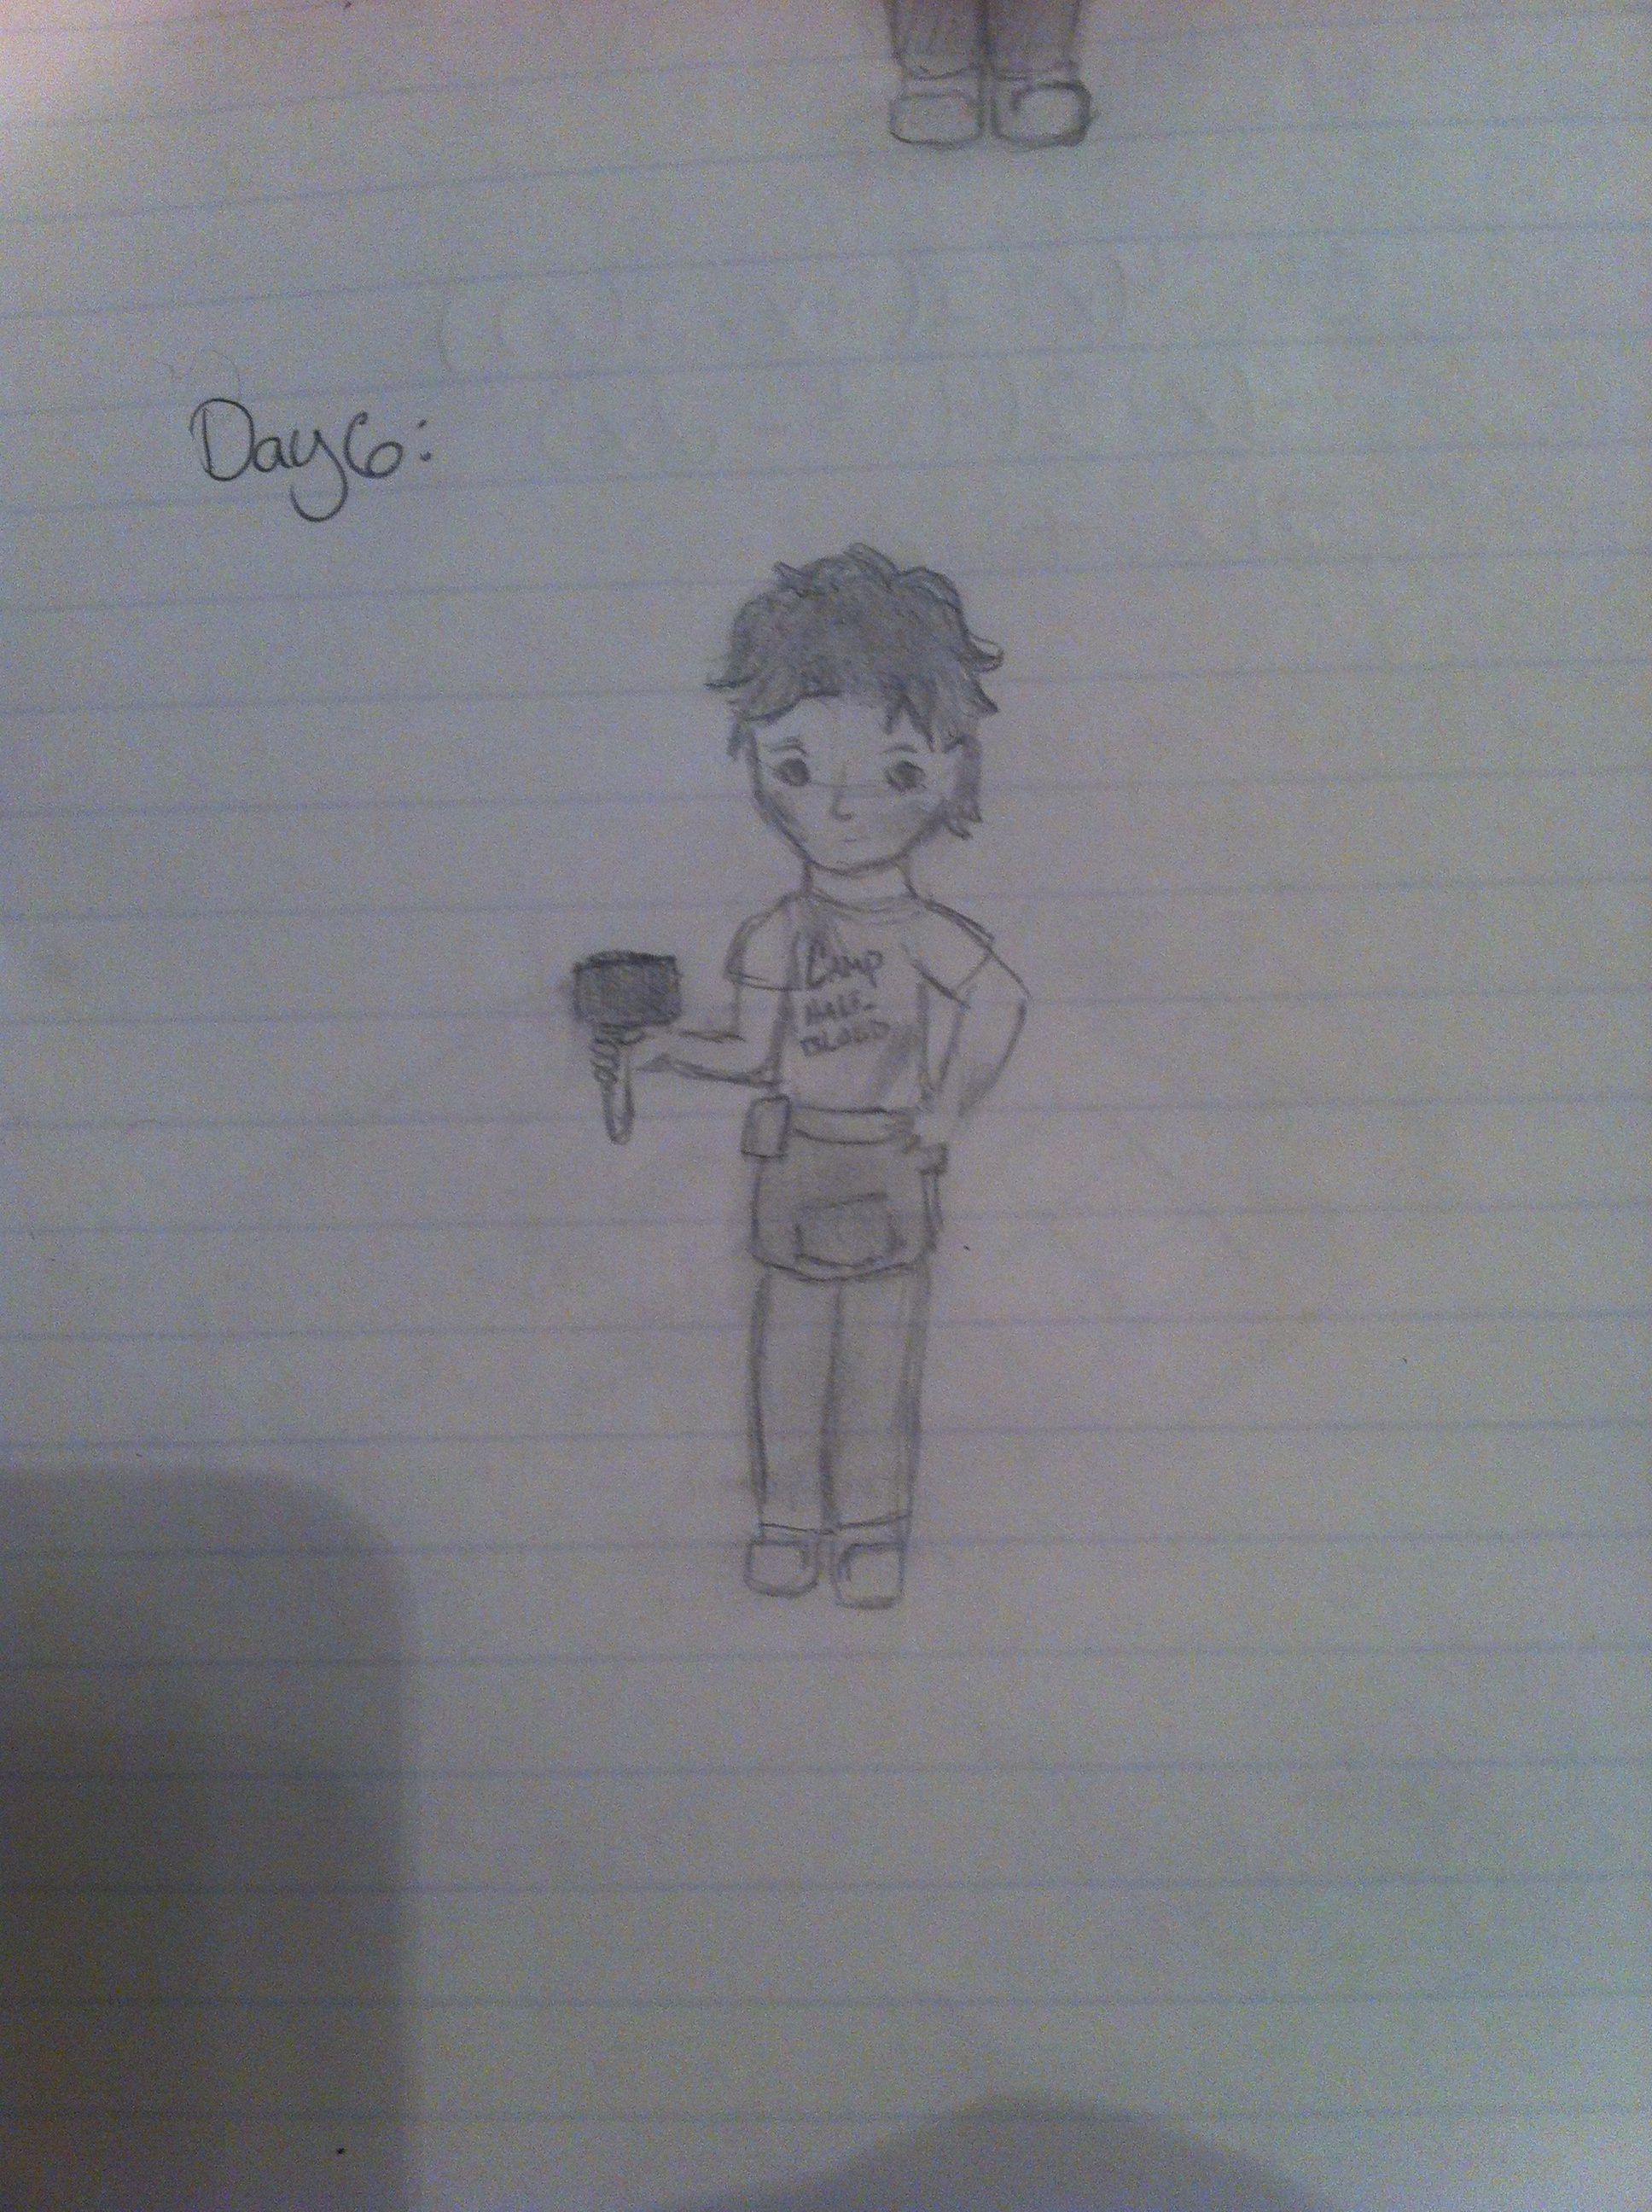 Day 6: draw your favorite book character (no movies); leo valdez, The Heroes of Olympus series